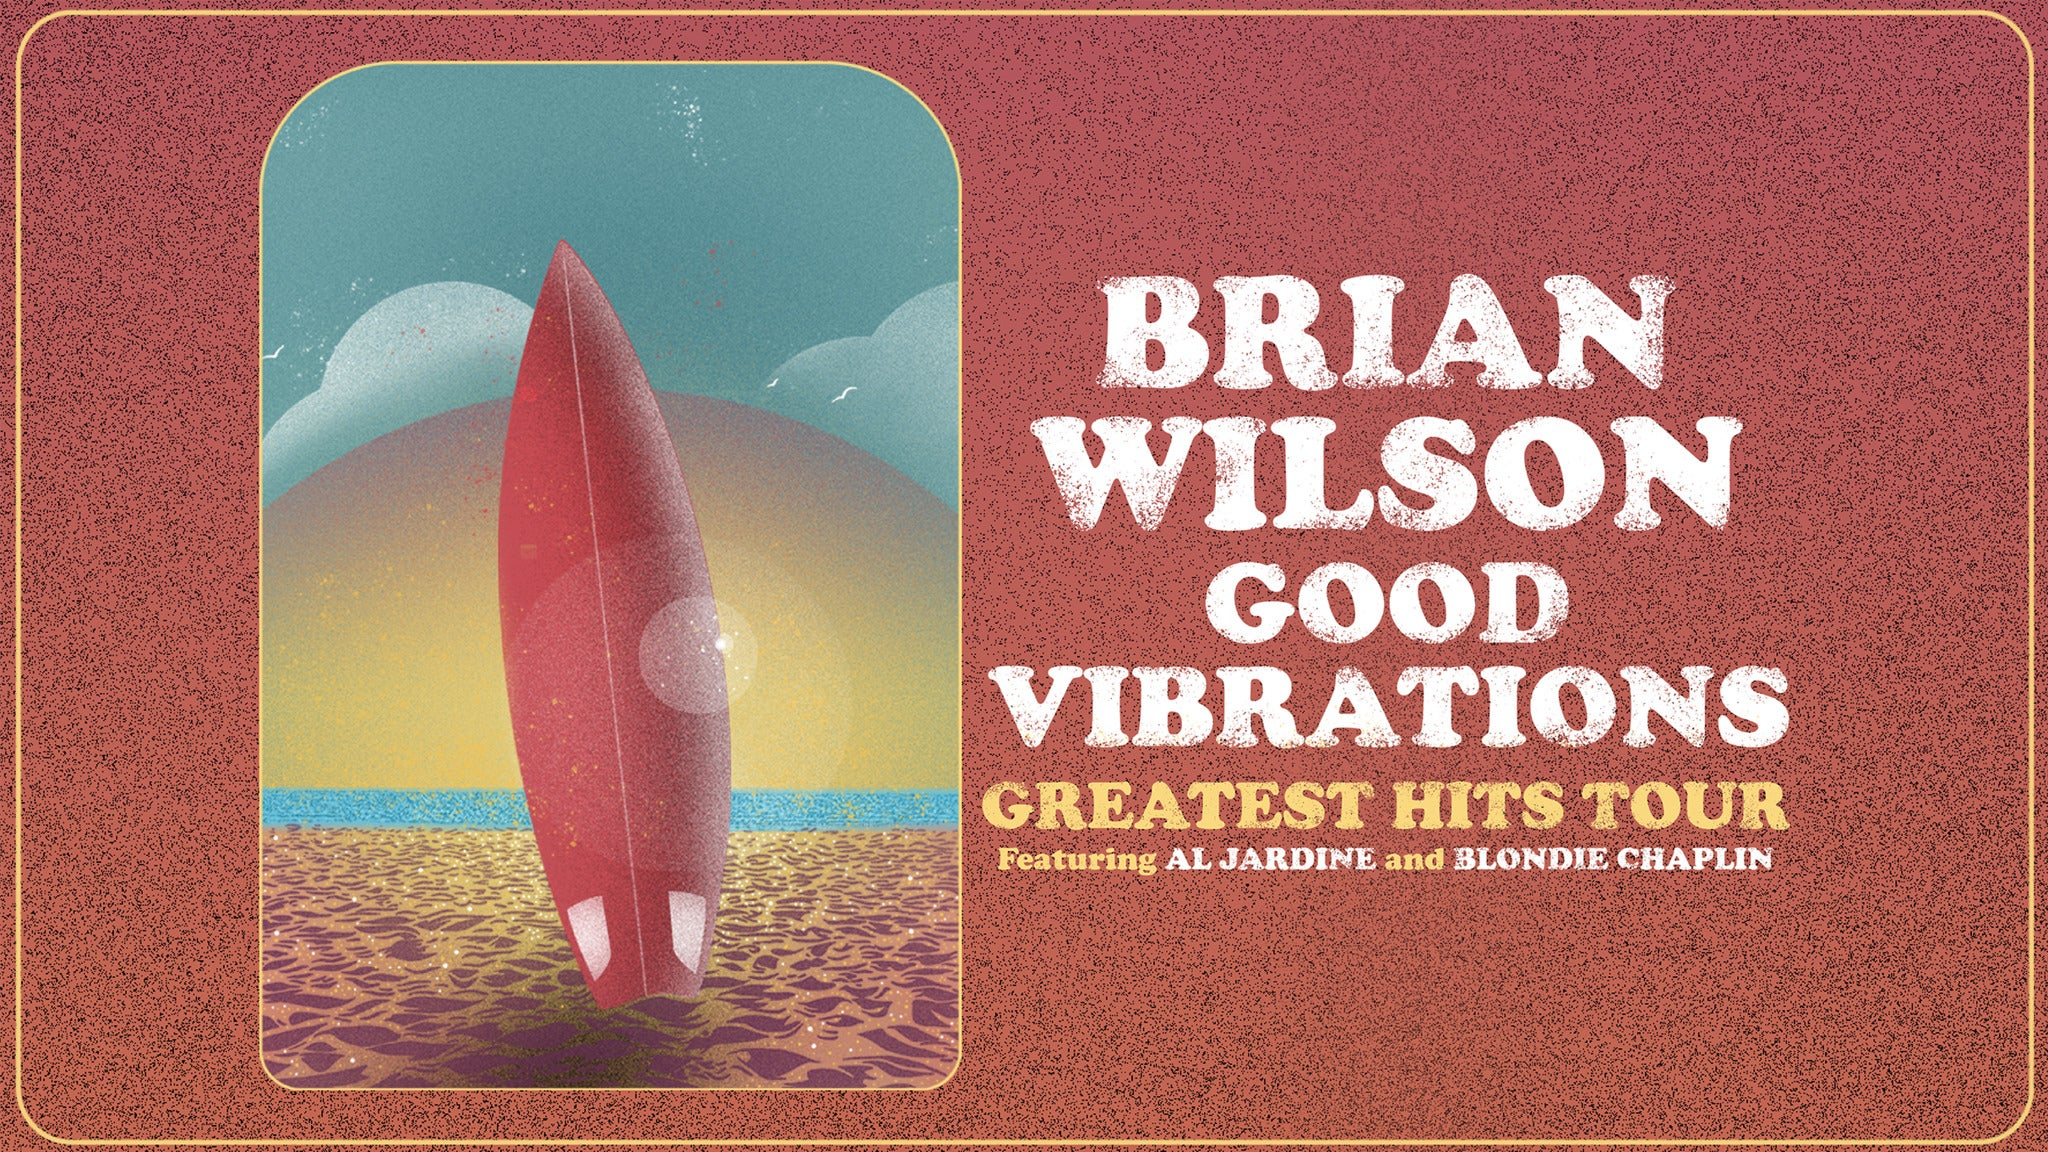 Brian Wilson - Good Vibrations - Greatest Hits Tour tickets (Copyright © Ticketmaster)